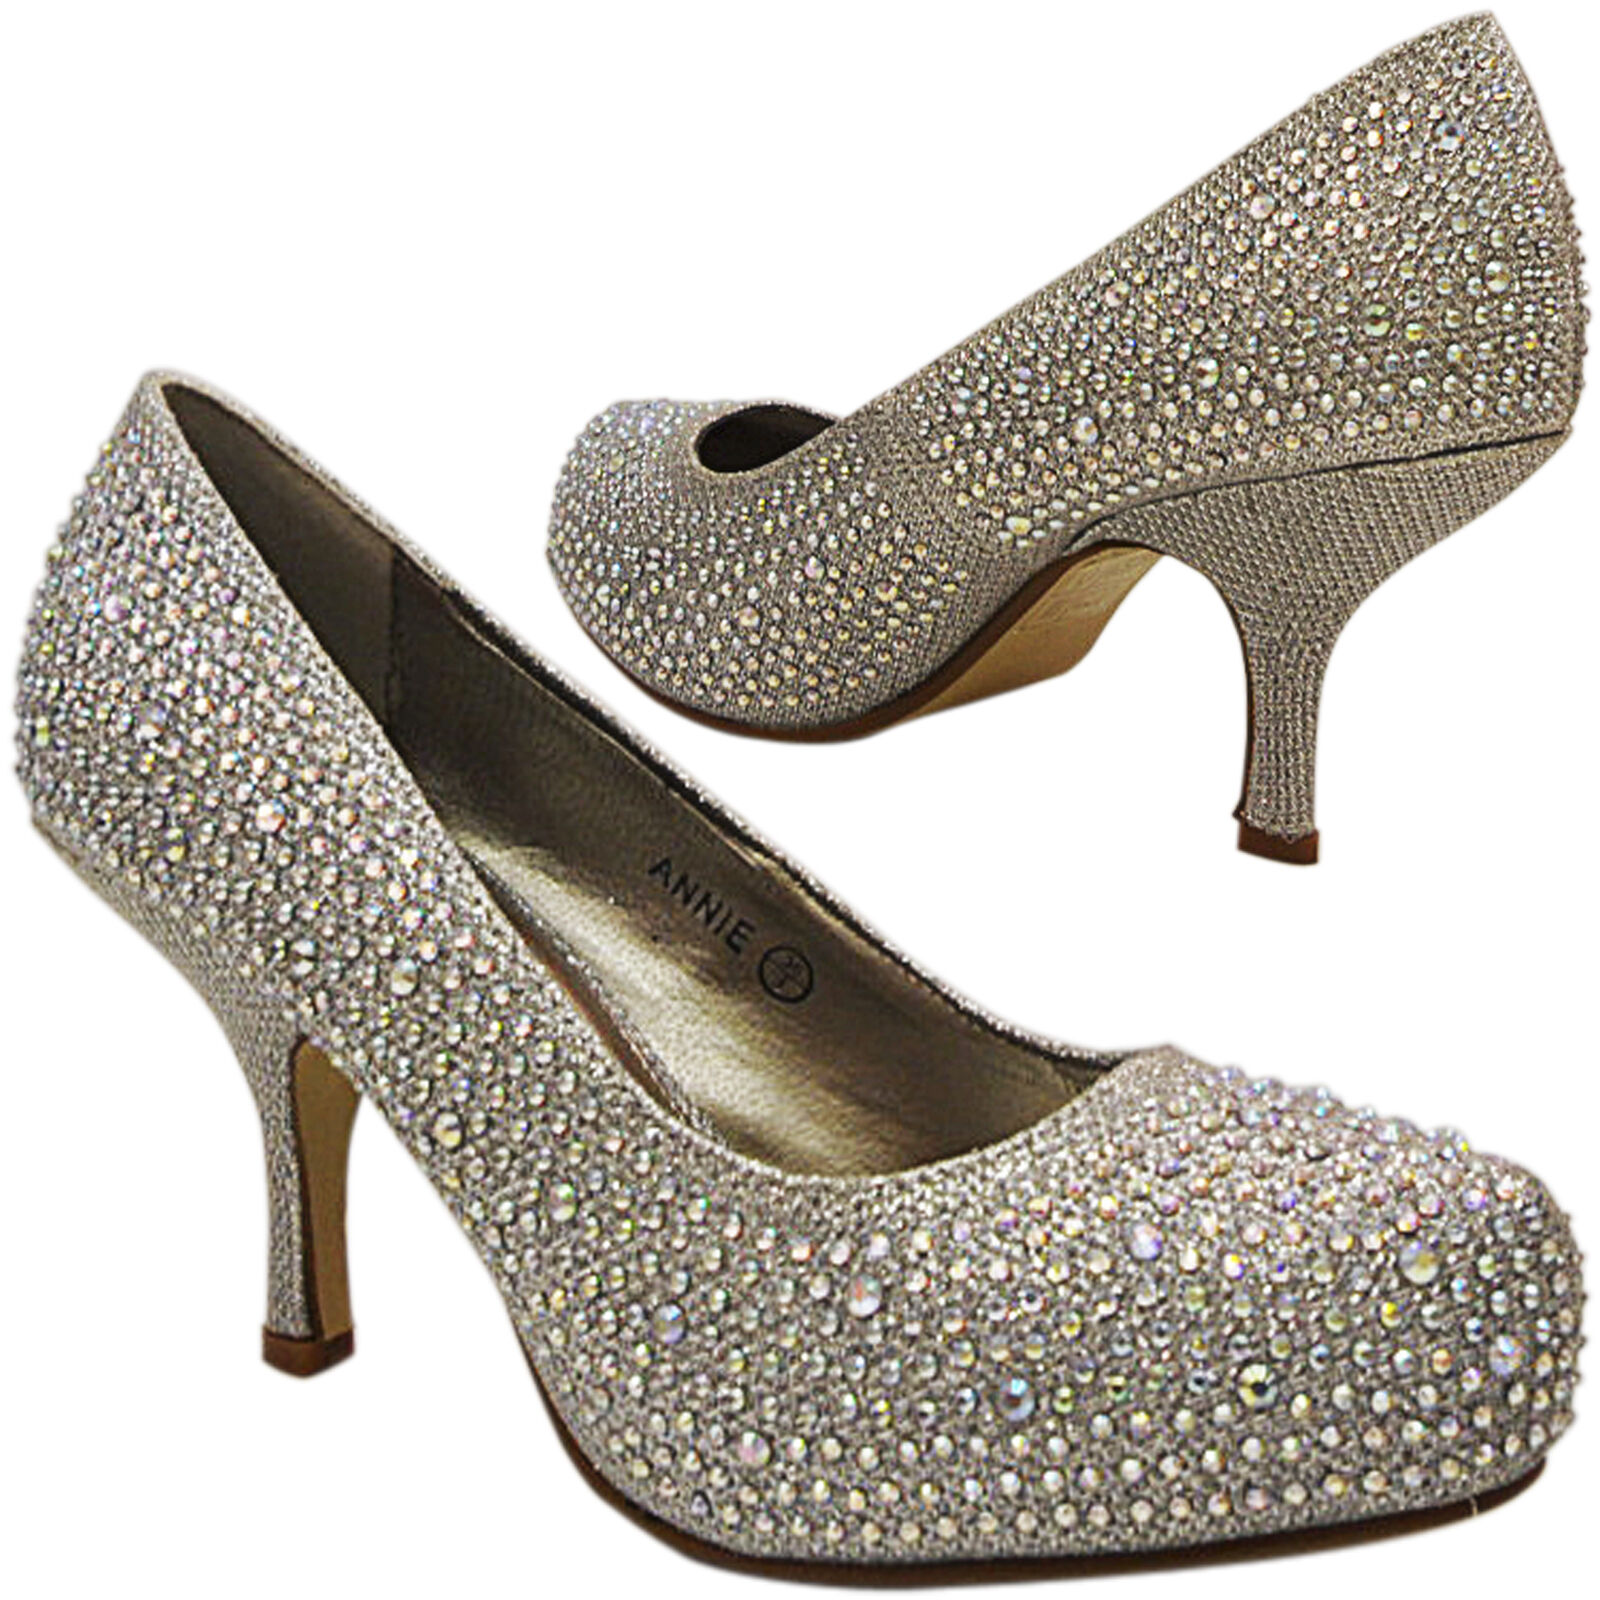 NEW WOMENS LADIES LOW HEEL BRIDAL PROM WEDDING PARTY SPARKLY COURT SHOES SIZE